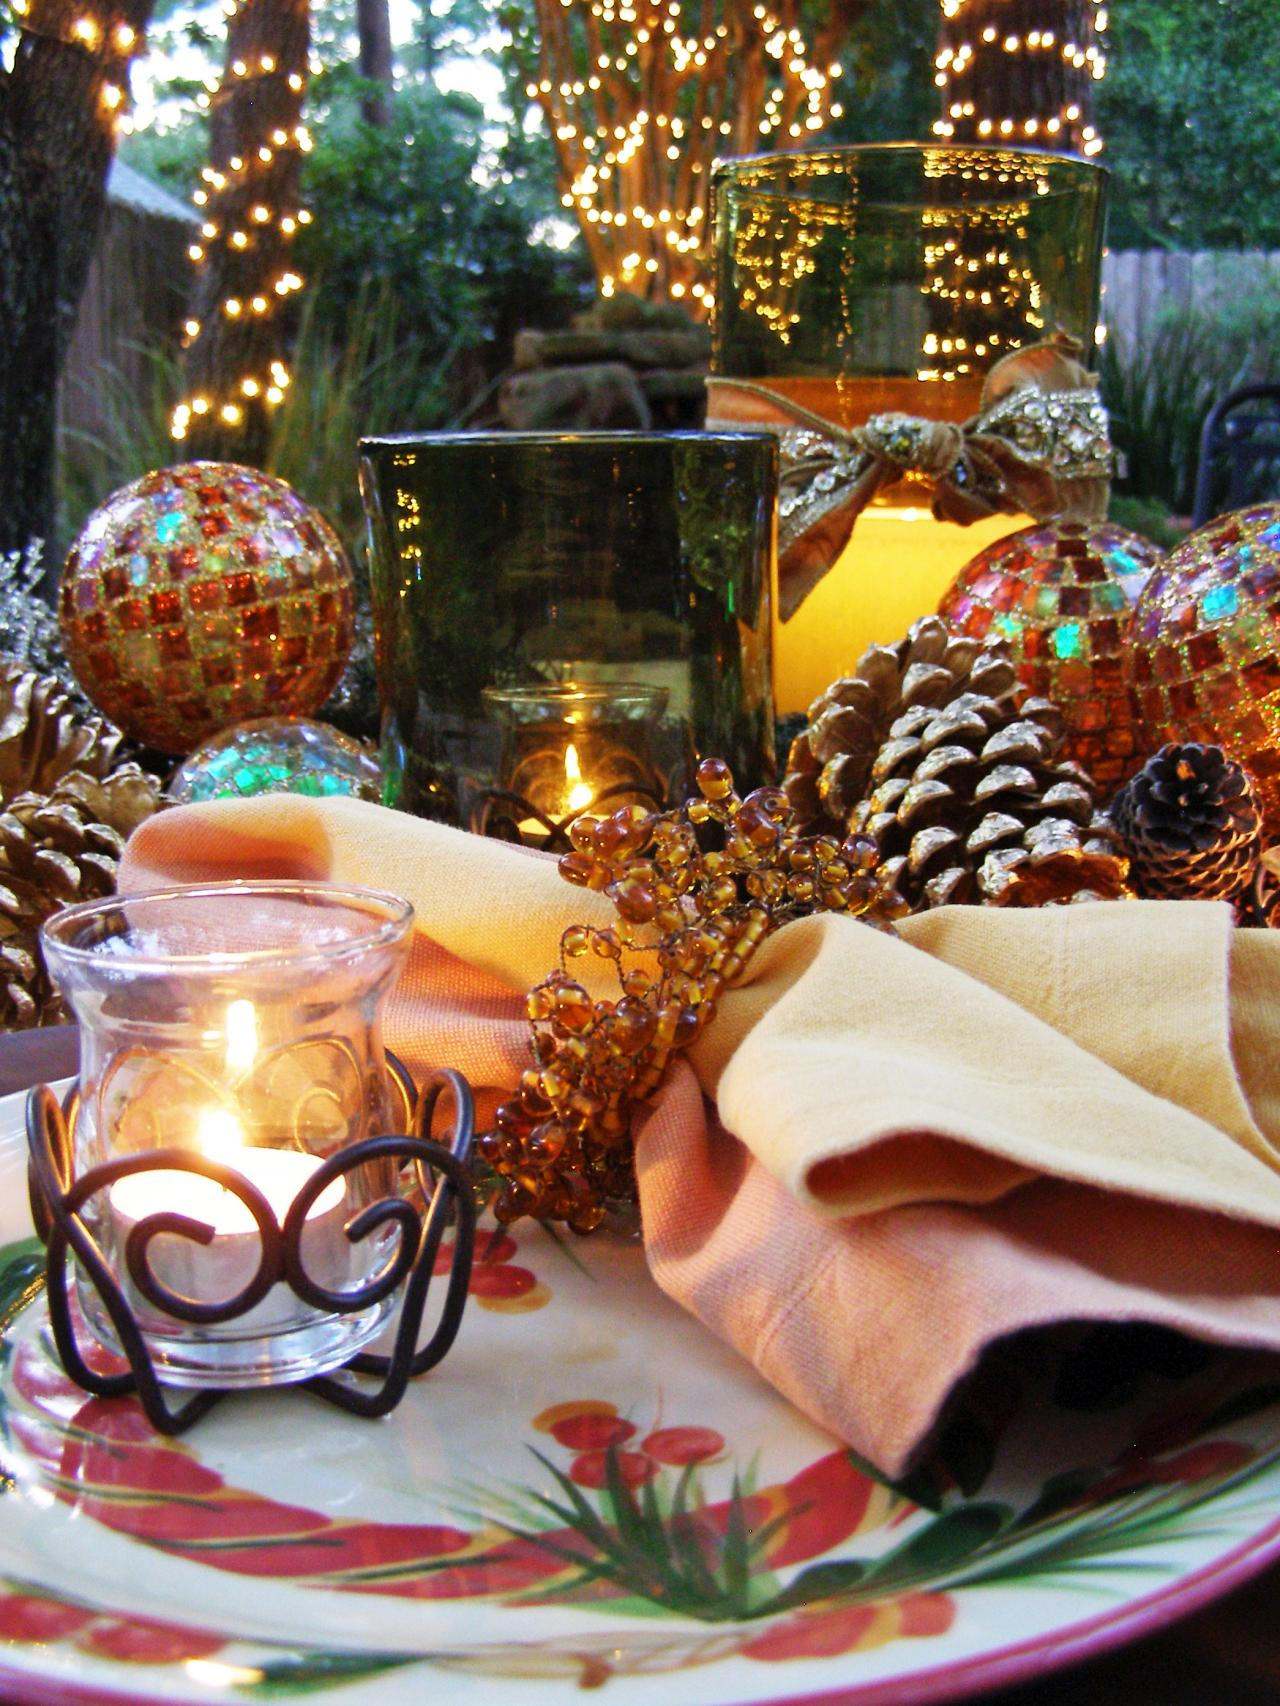 Hgtv christmas home decorating ideas - Buy christmas decorations online india ...